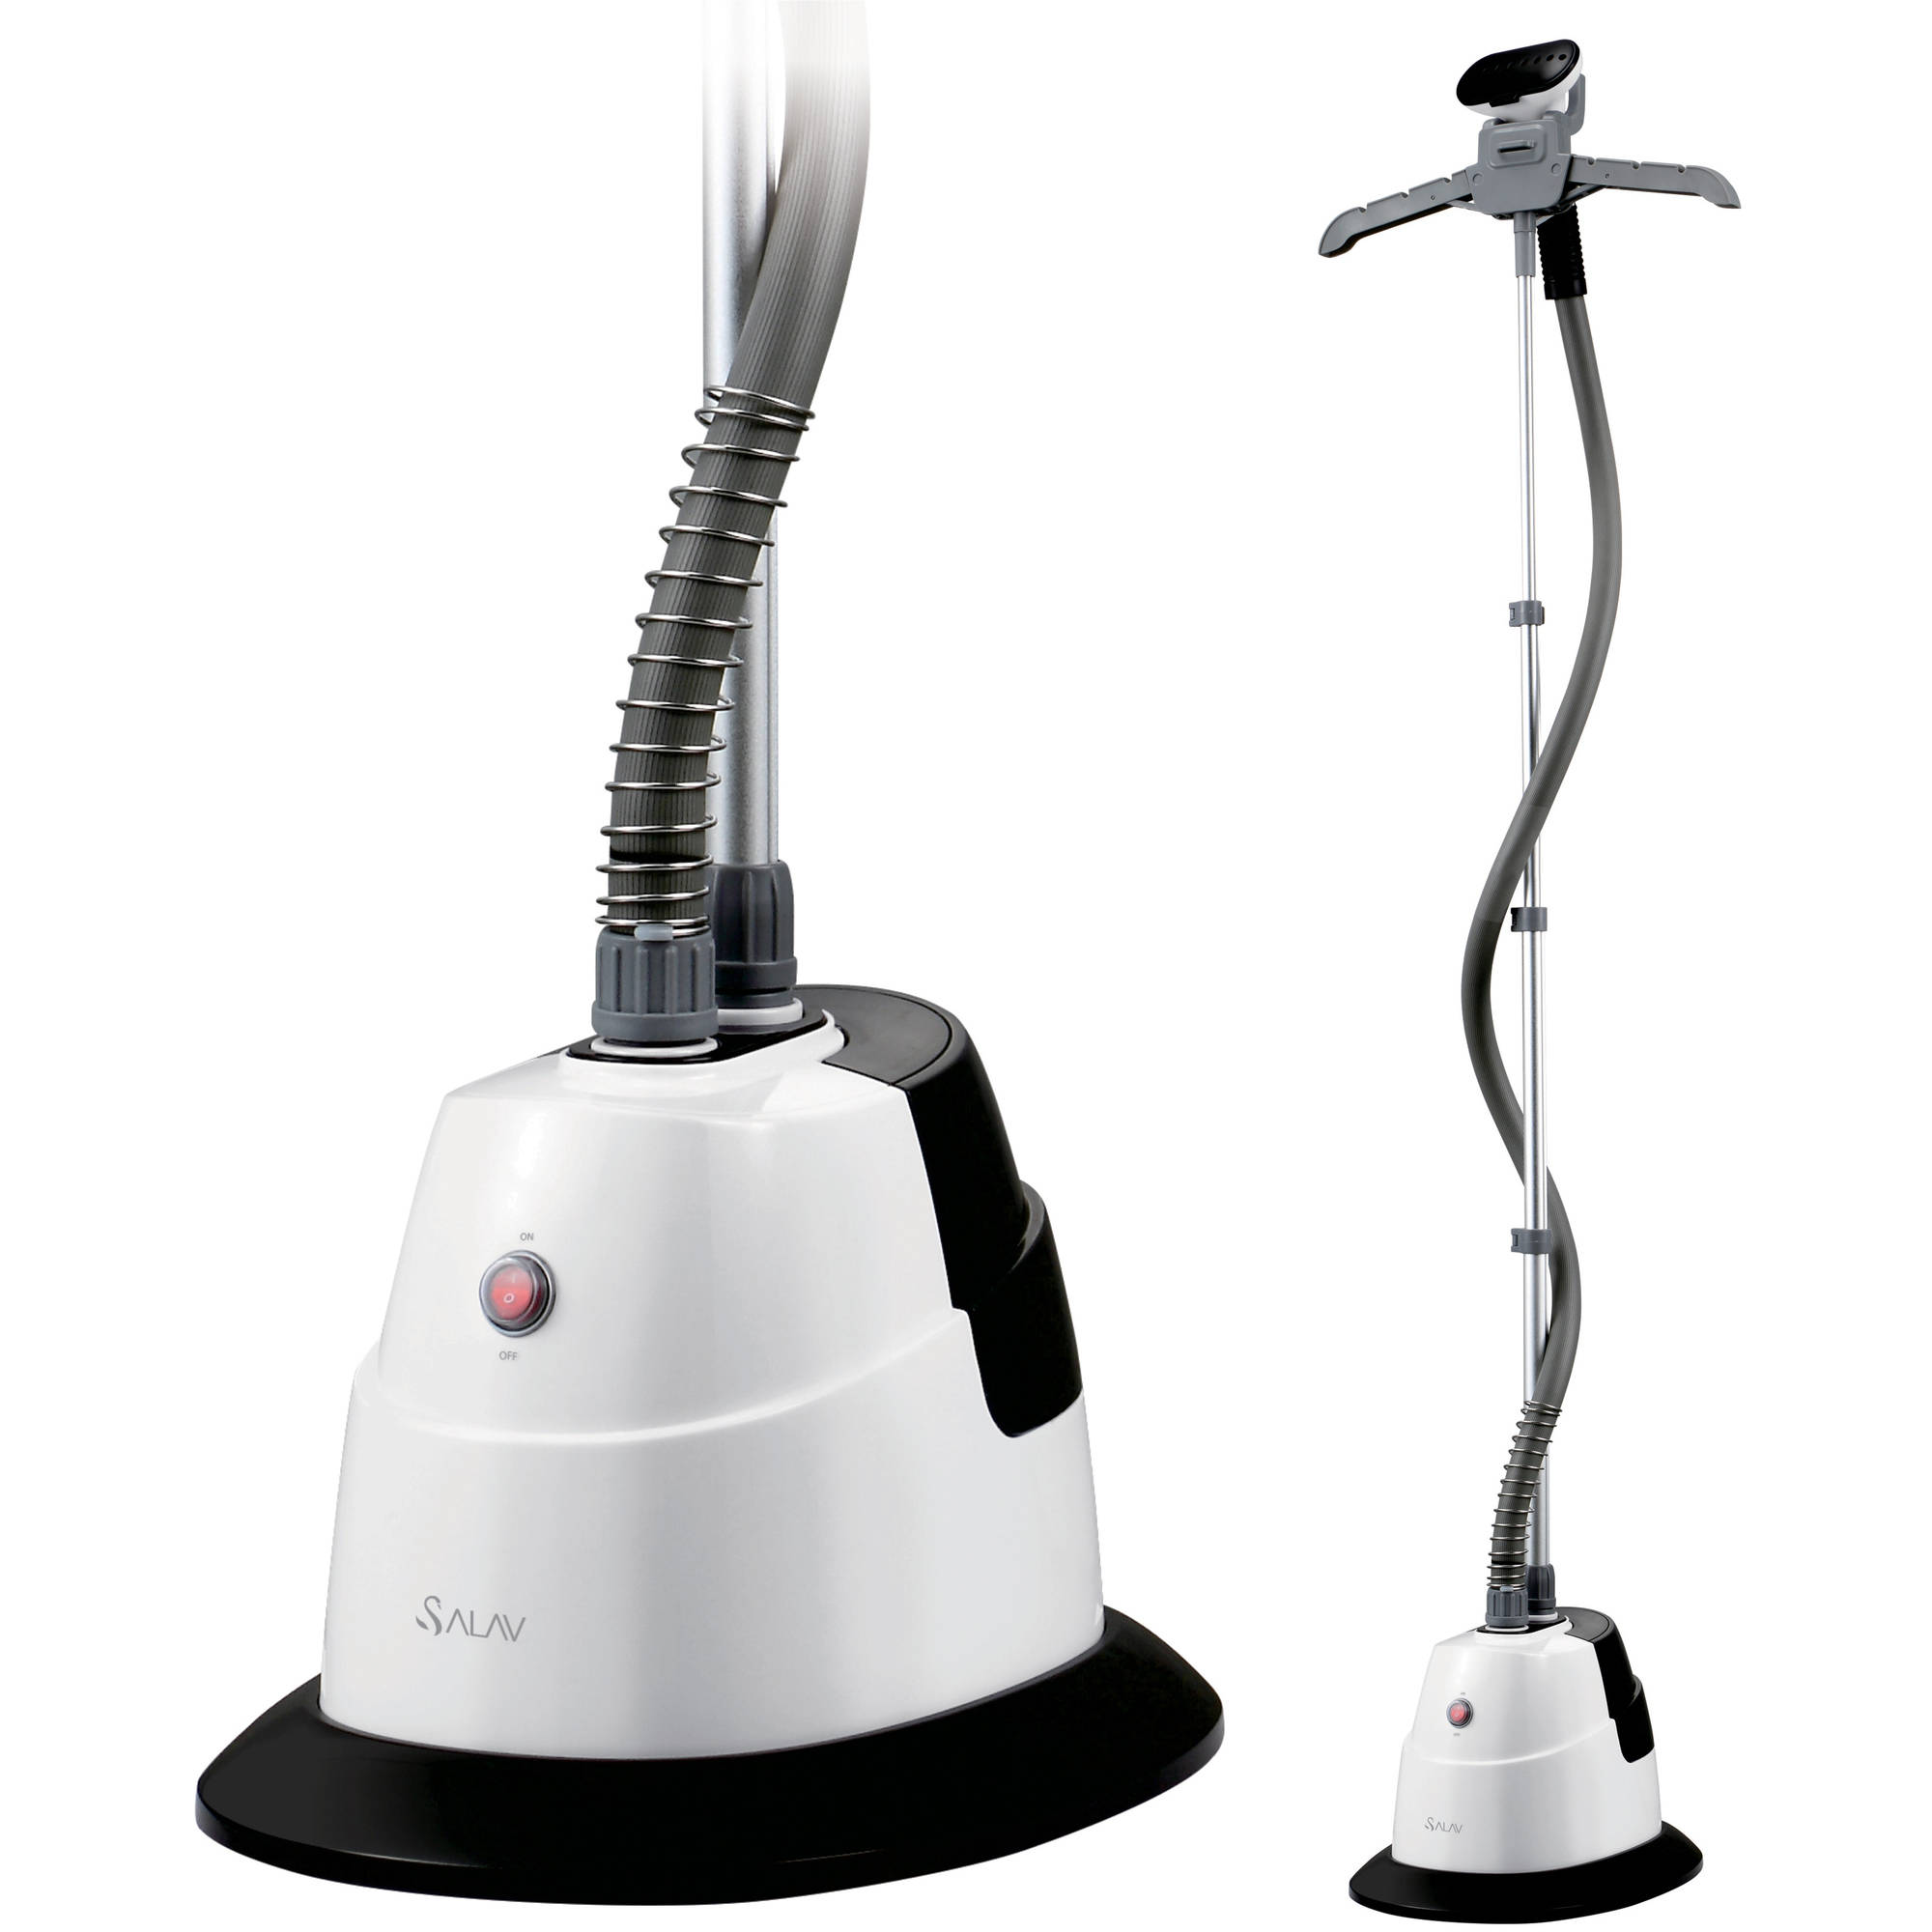 Click here to buy ***DISCONTINUED***SALAV GS06-DJ Performance Garment Steamer with 360 Swivel Hanger, Dual....